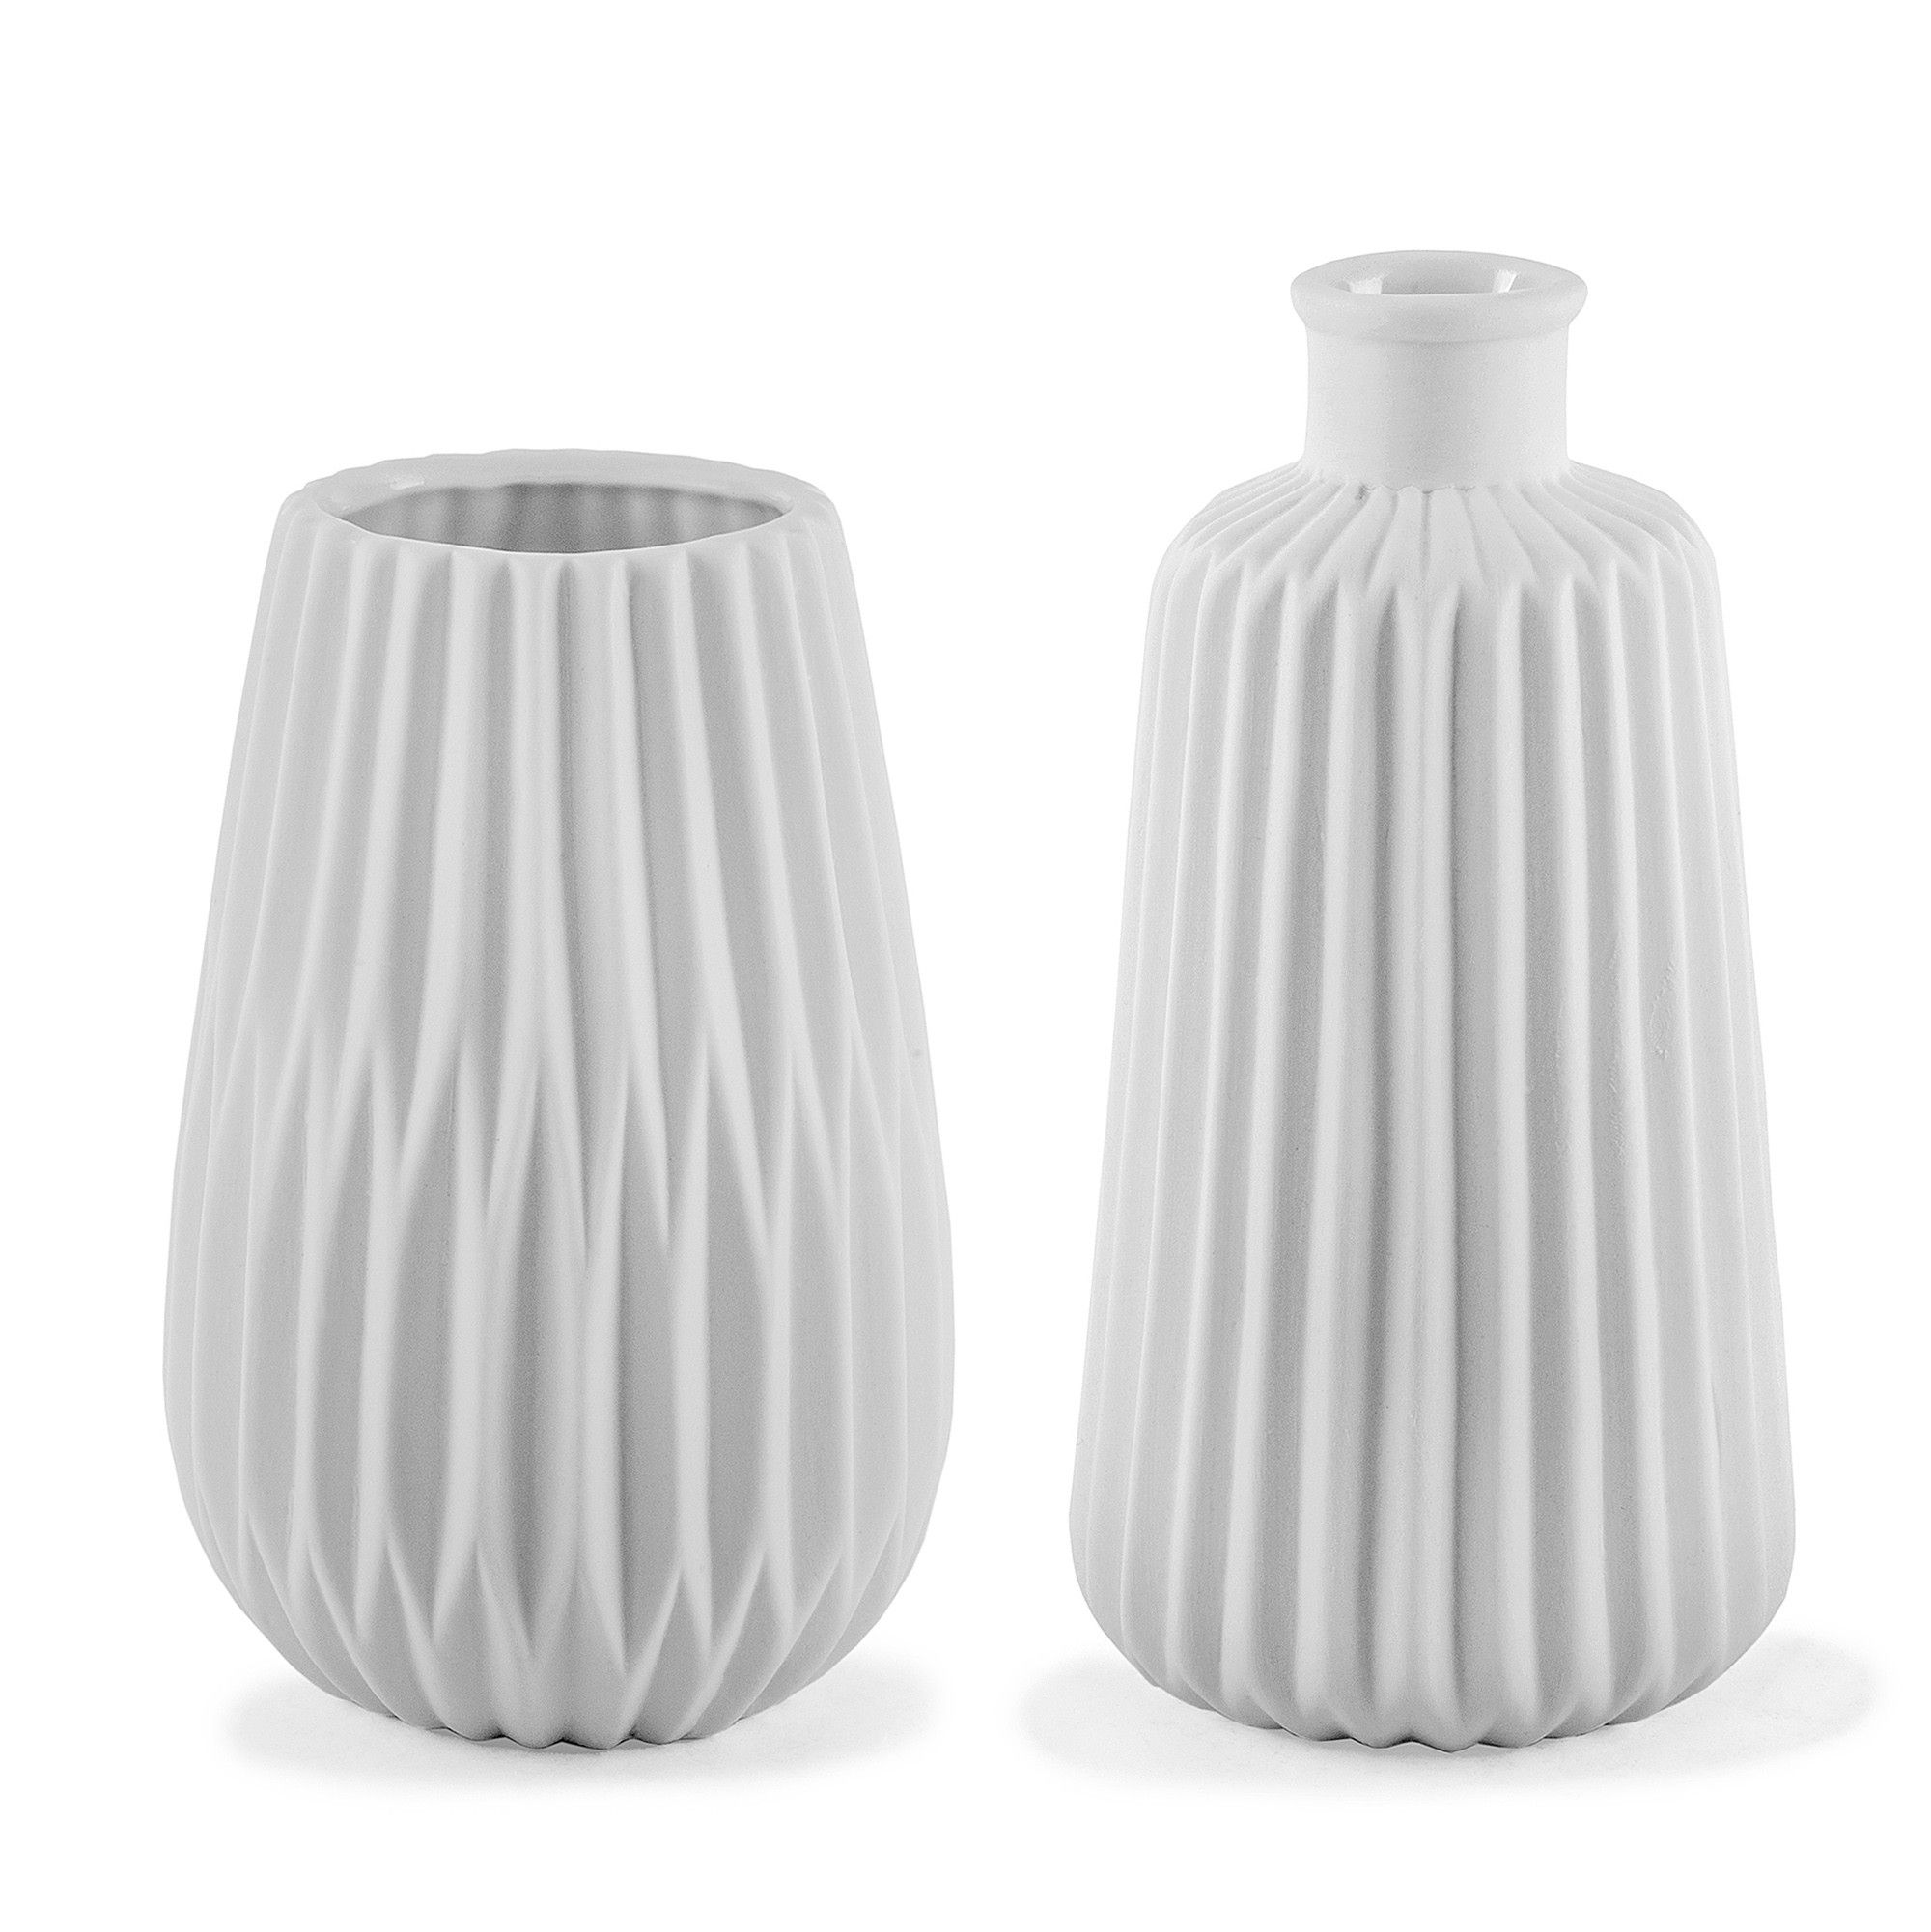 'Esko' Duo White Porcelain Contemporary Vases For The Home #dining #diningroom #modern #different #home #accessories #vase